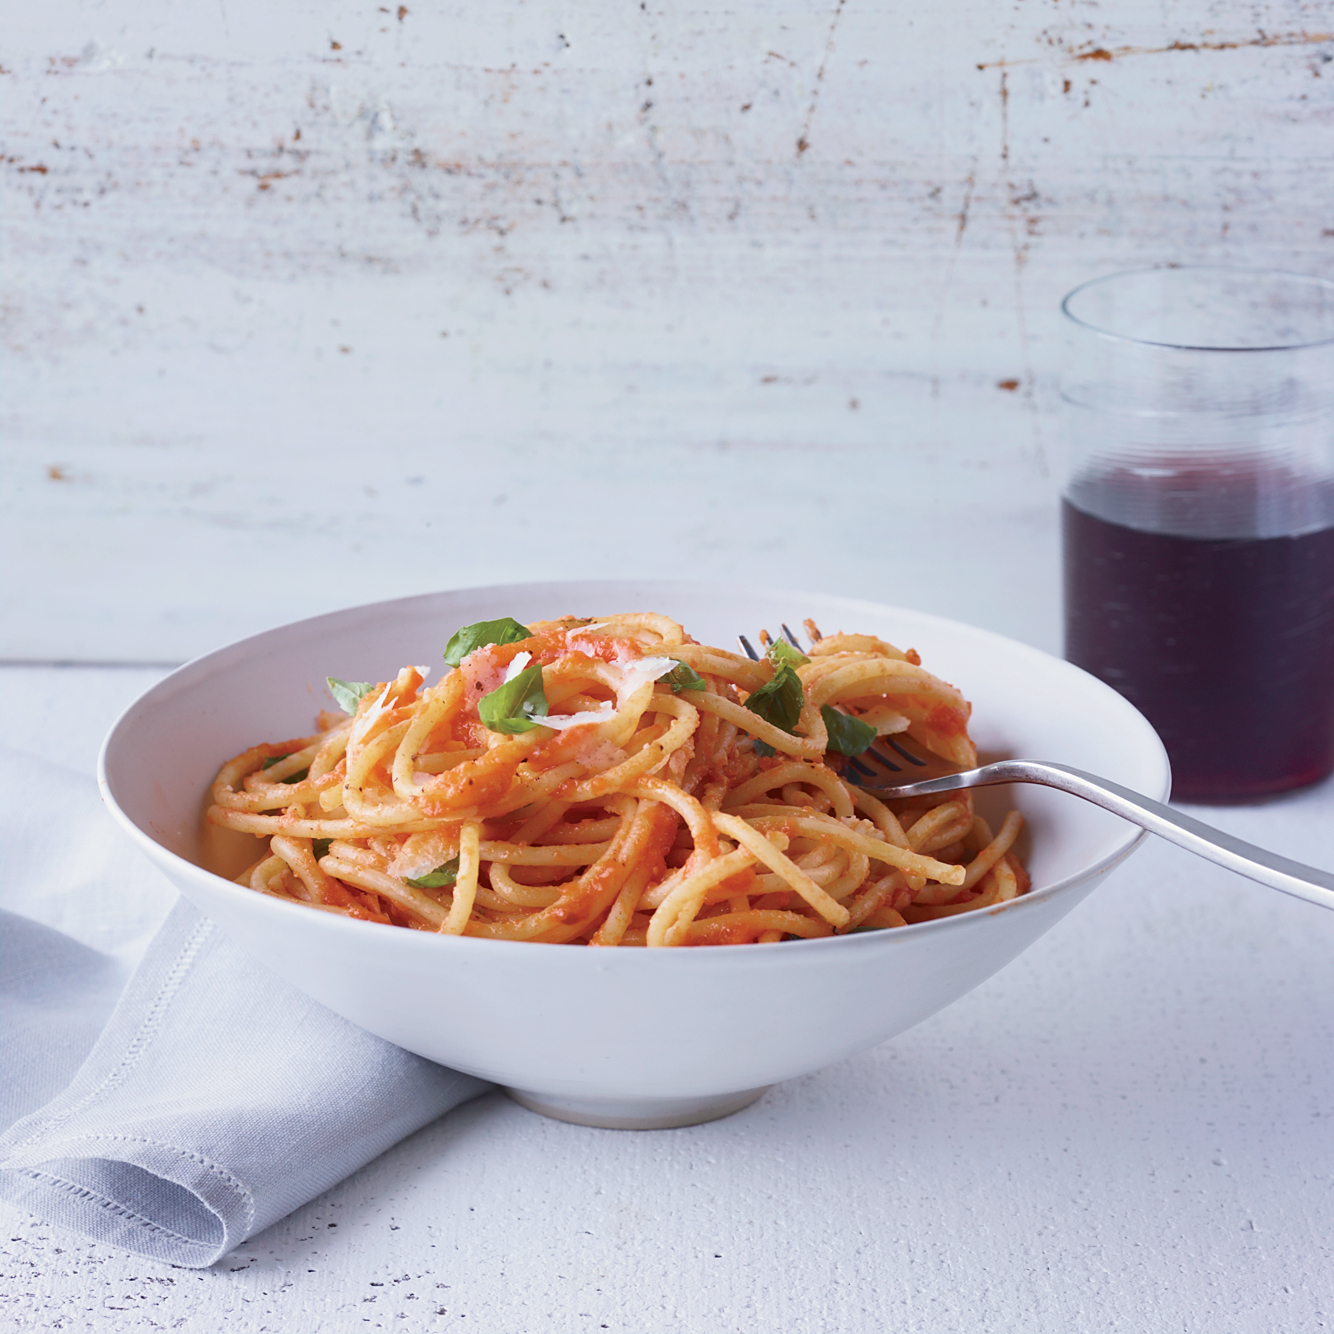 $4 Spaghetti That's Almost as Good as $24 Spaghetti Recipe